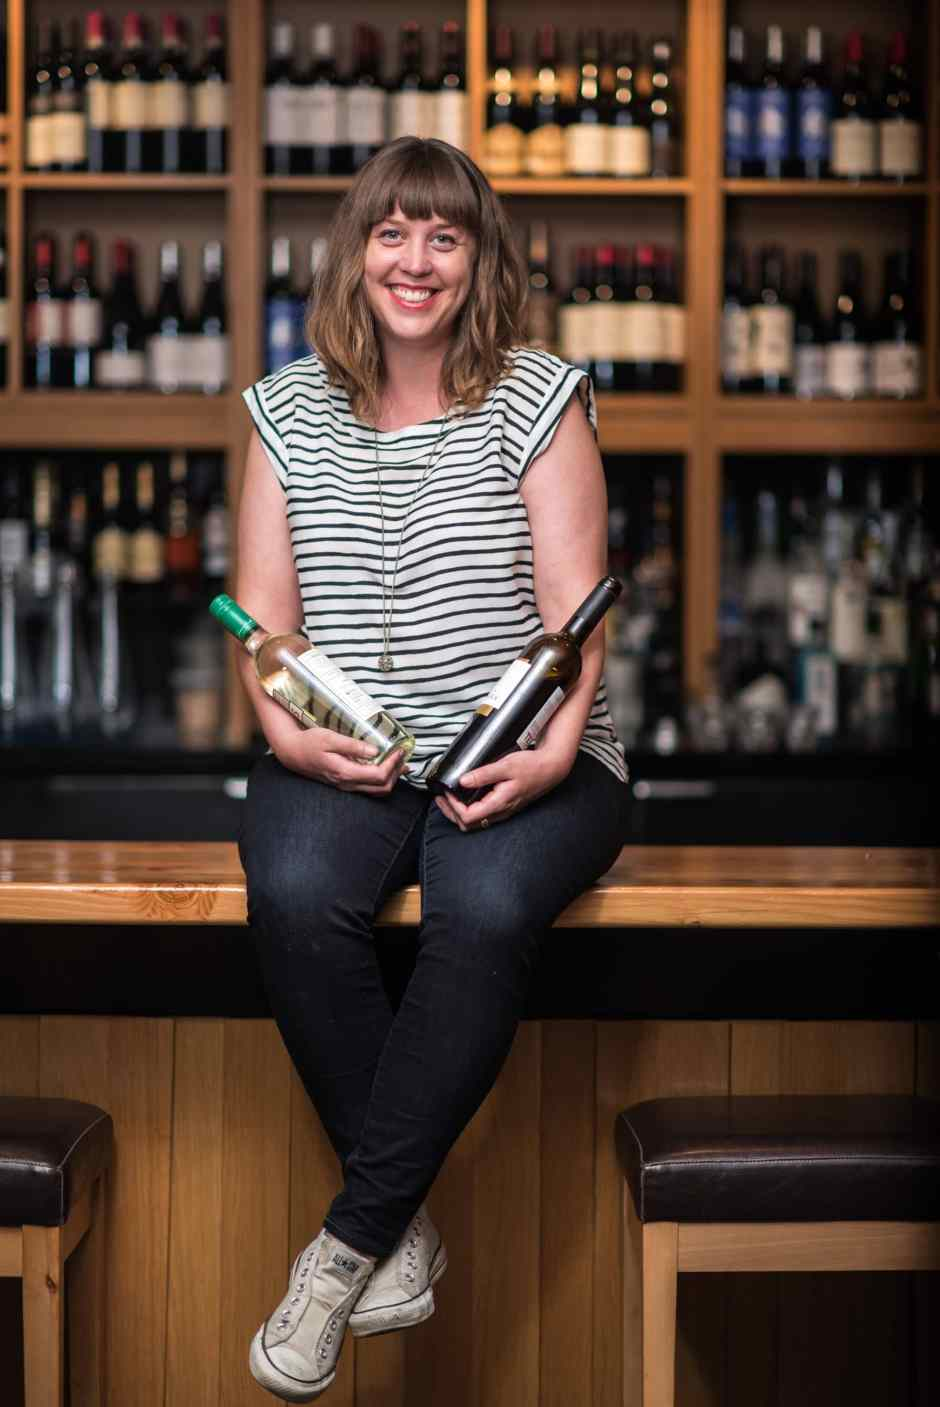 Meg sitting on a bar, holding two bottles of wine, smiling at the camera